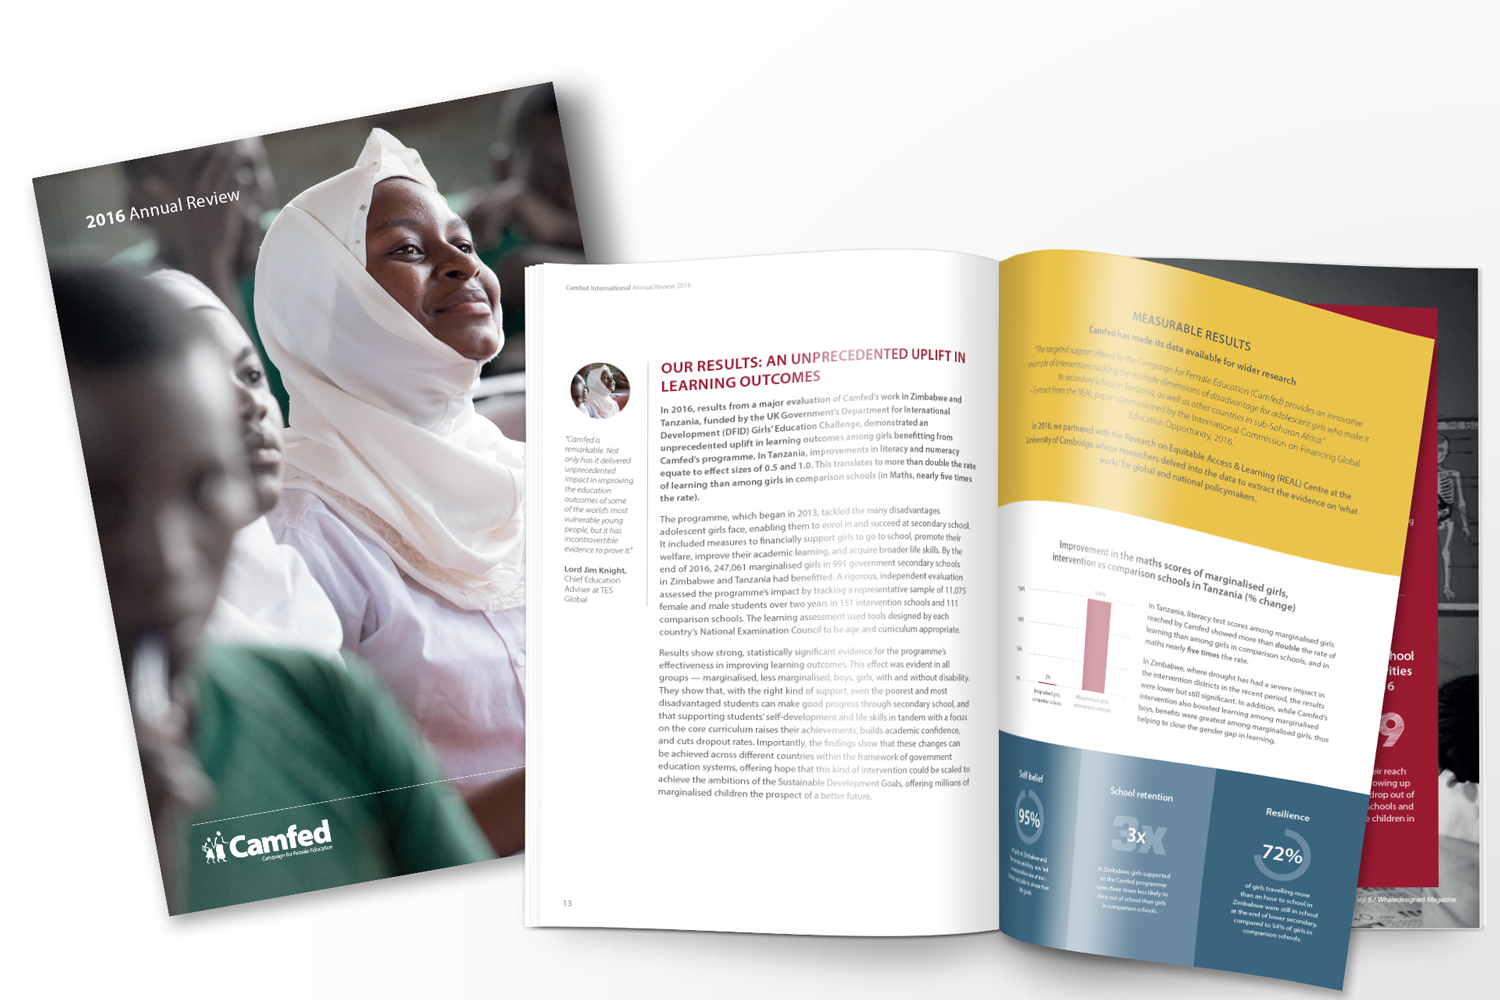 Camfed Annual Review 2016